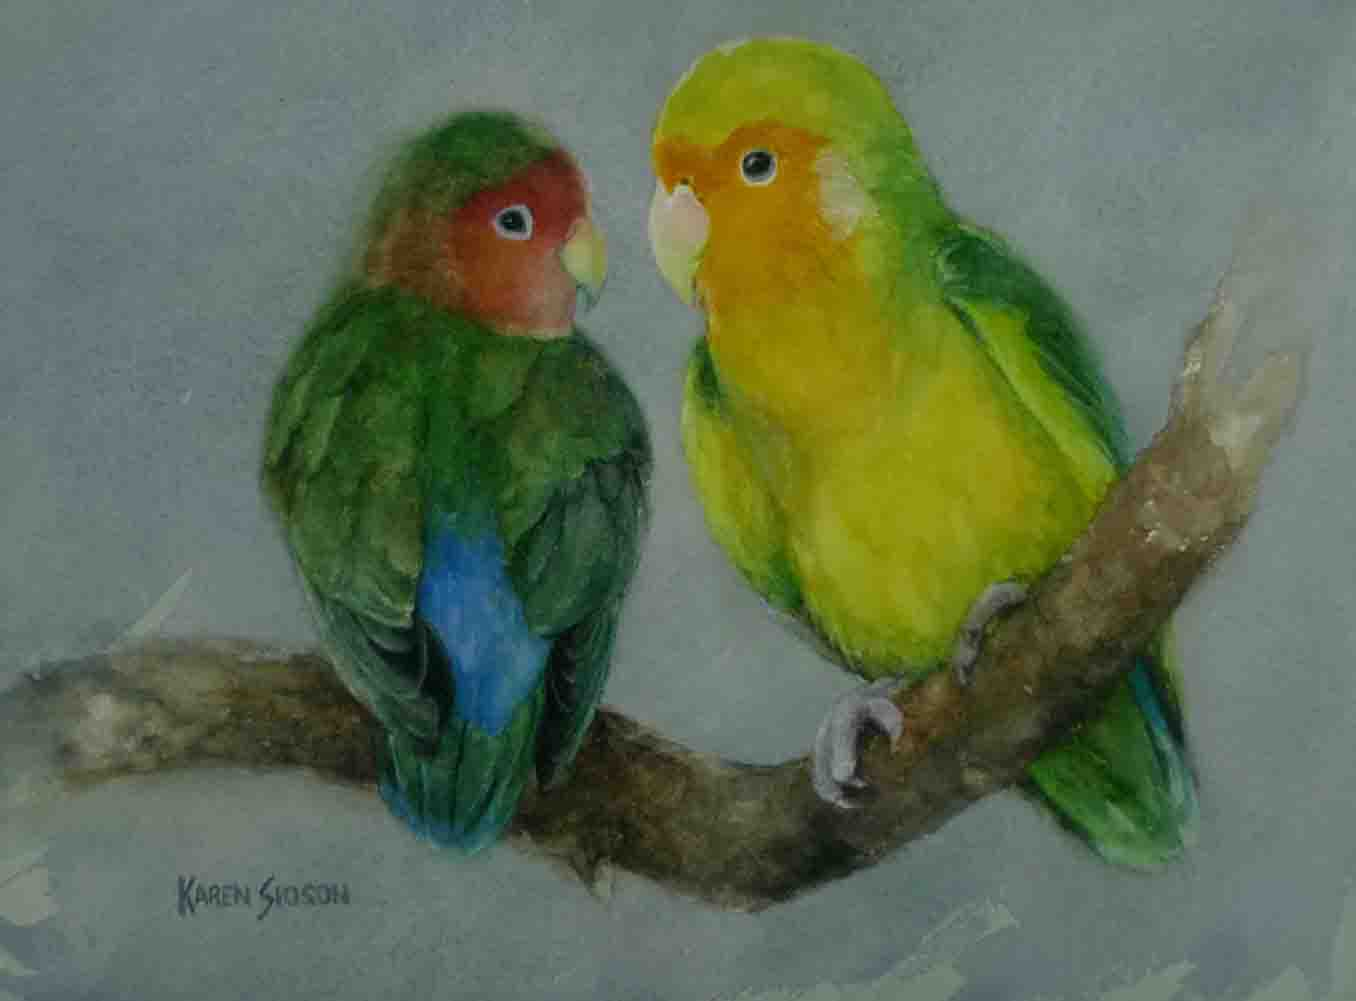 Karen Sioson_Love Birds_02_TN